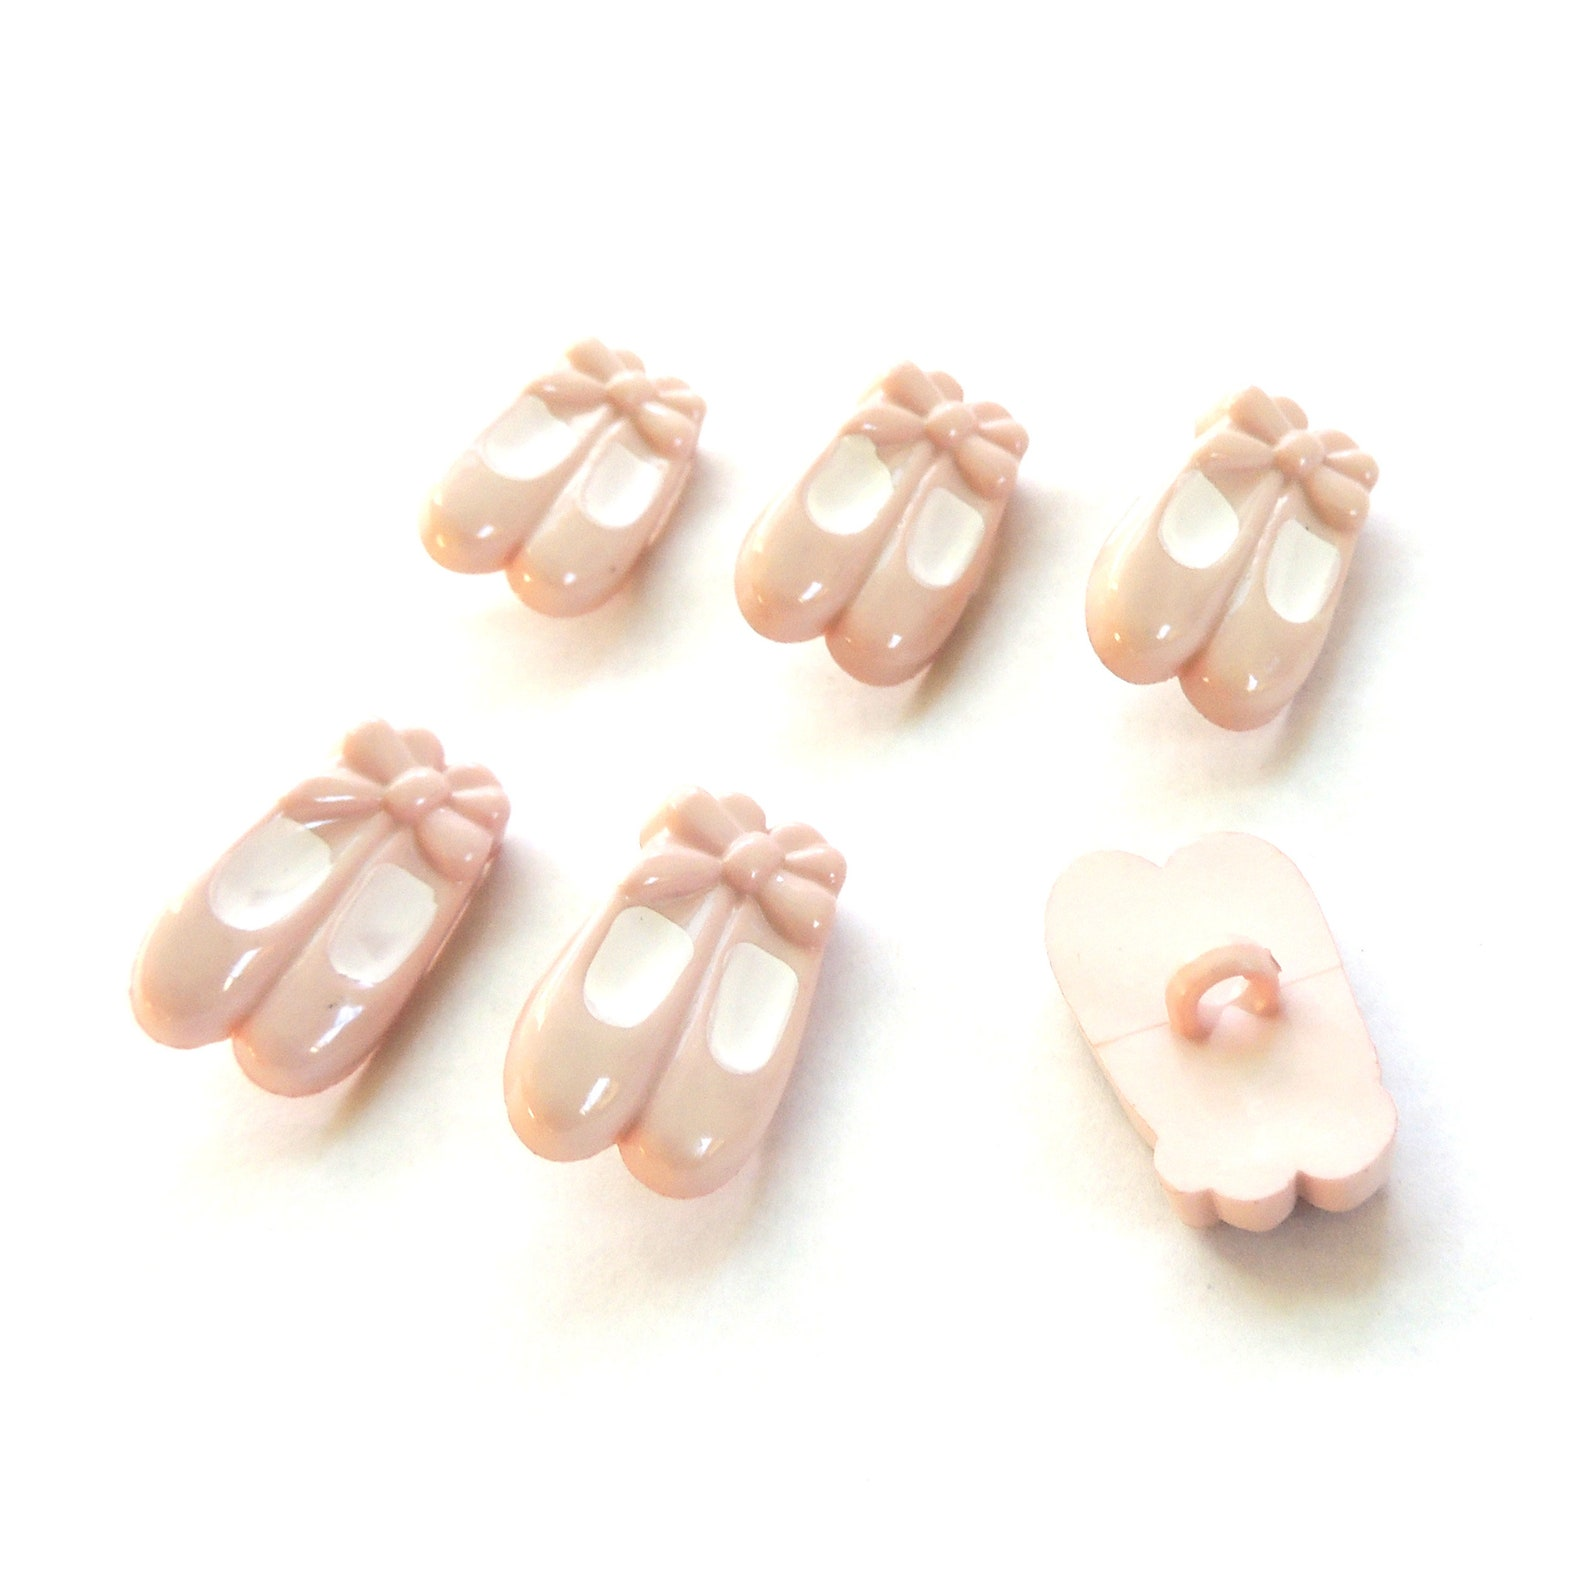 ballet shoe buttons by buttons galore // pink novelty dance ballerina girl sewing scrapbook pointe